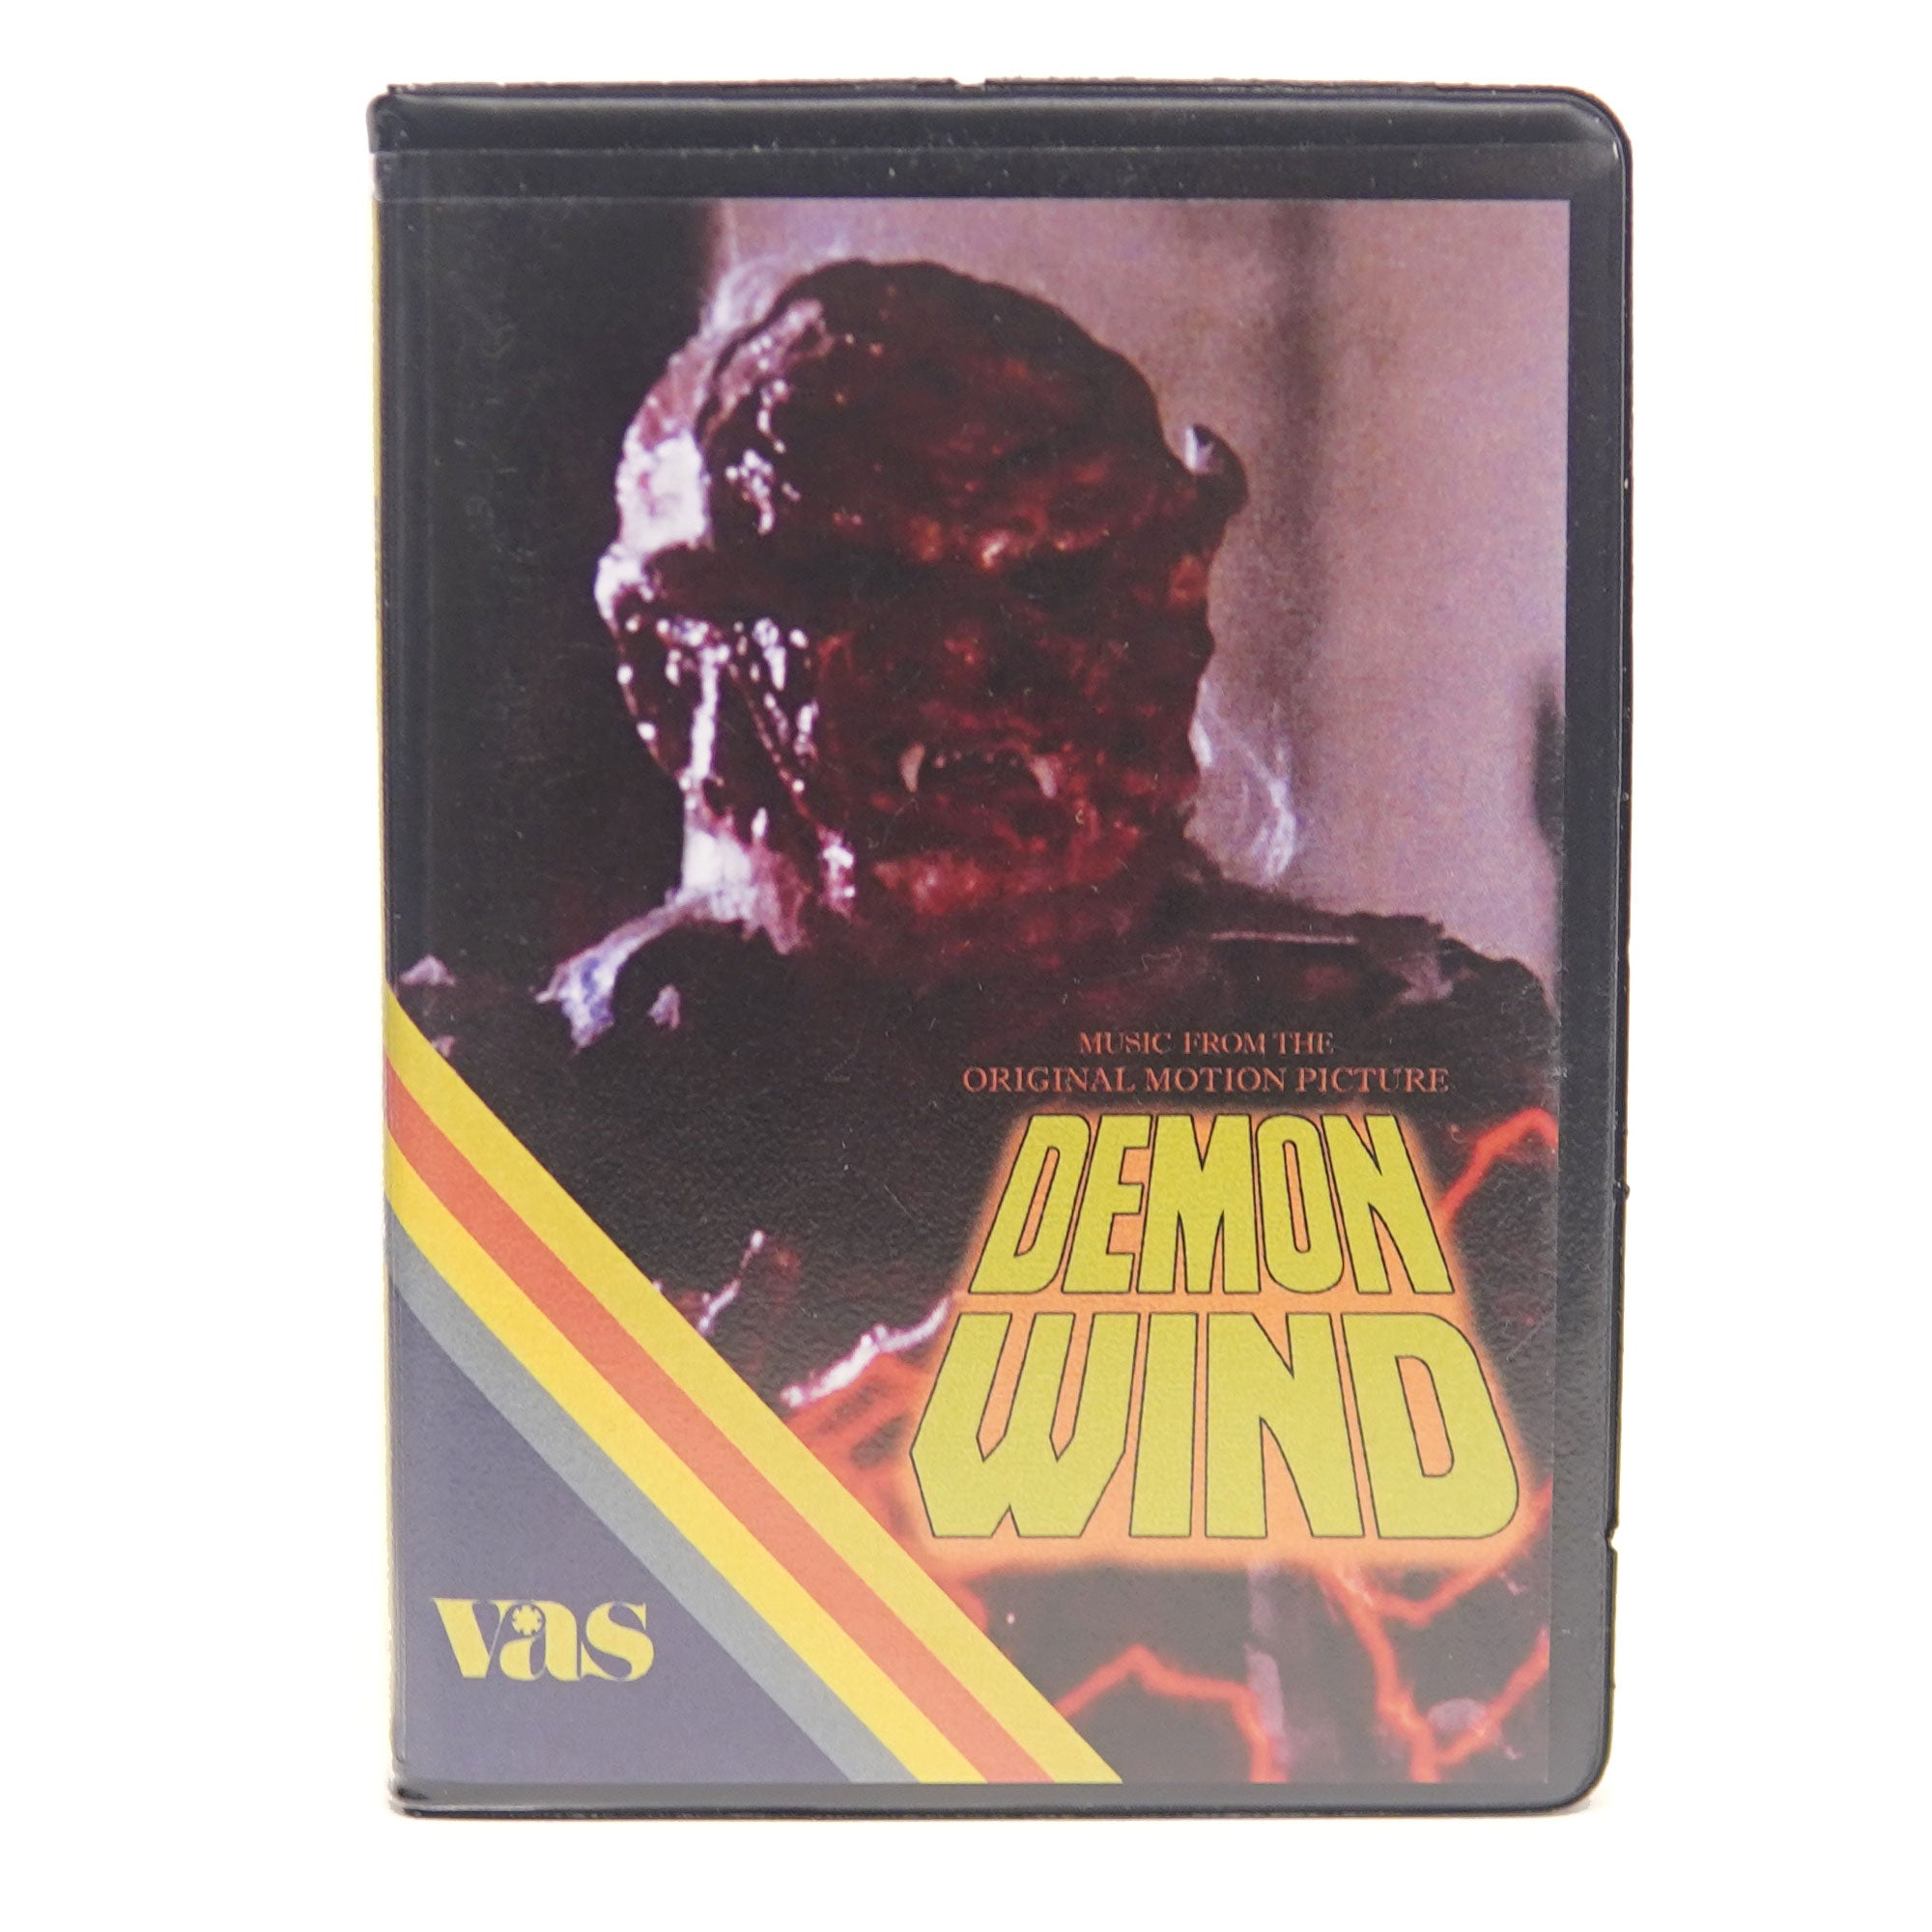 Demon Wind - Original Motion Picture Soundtrack VAS